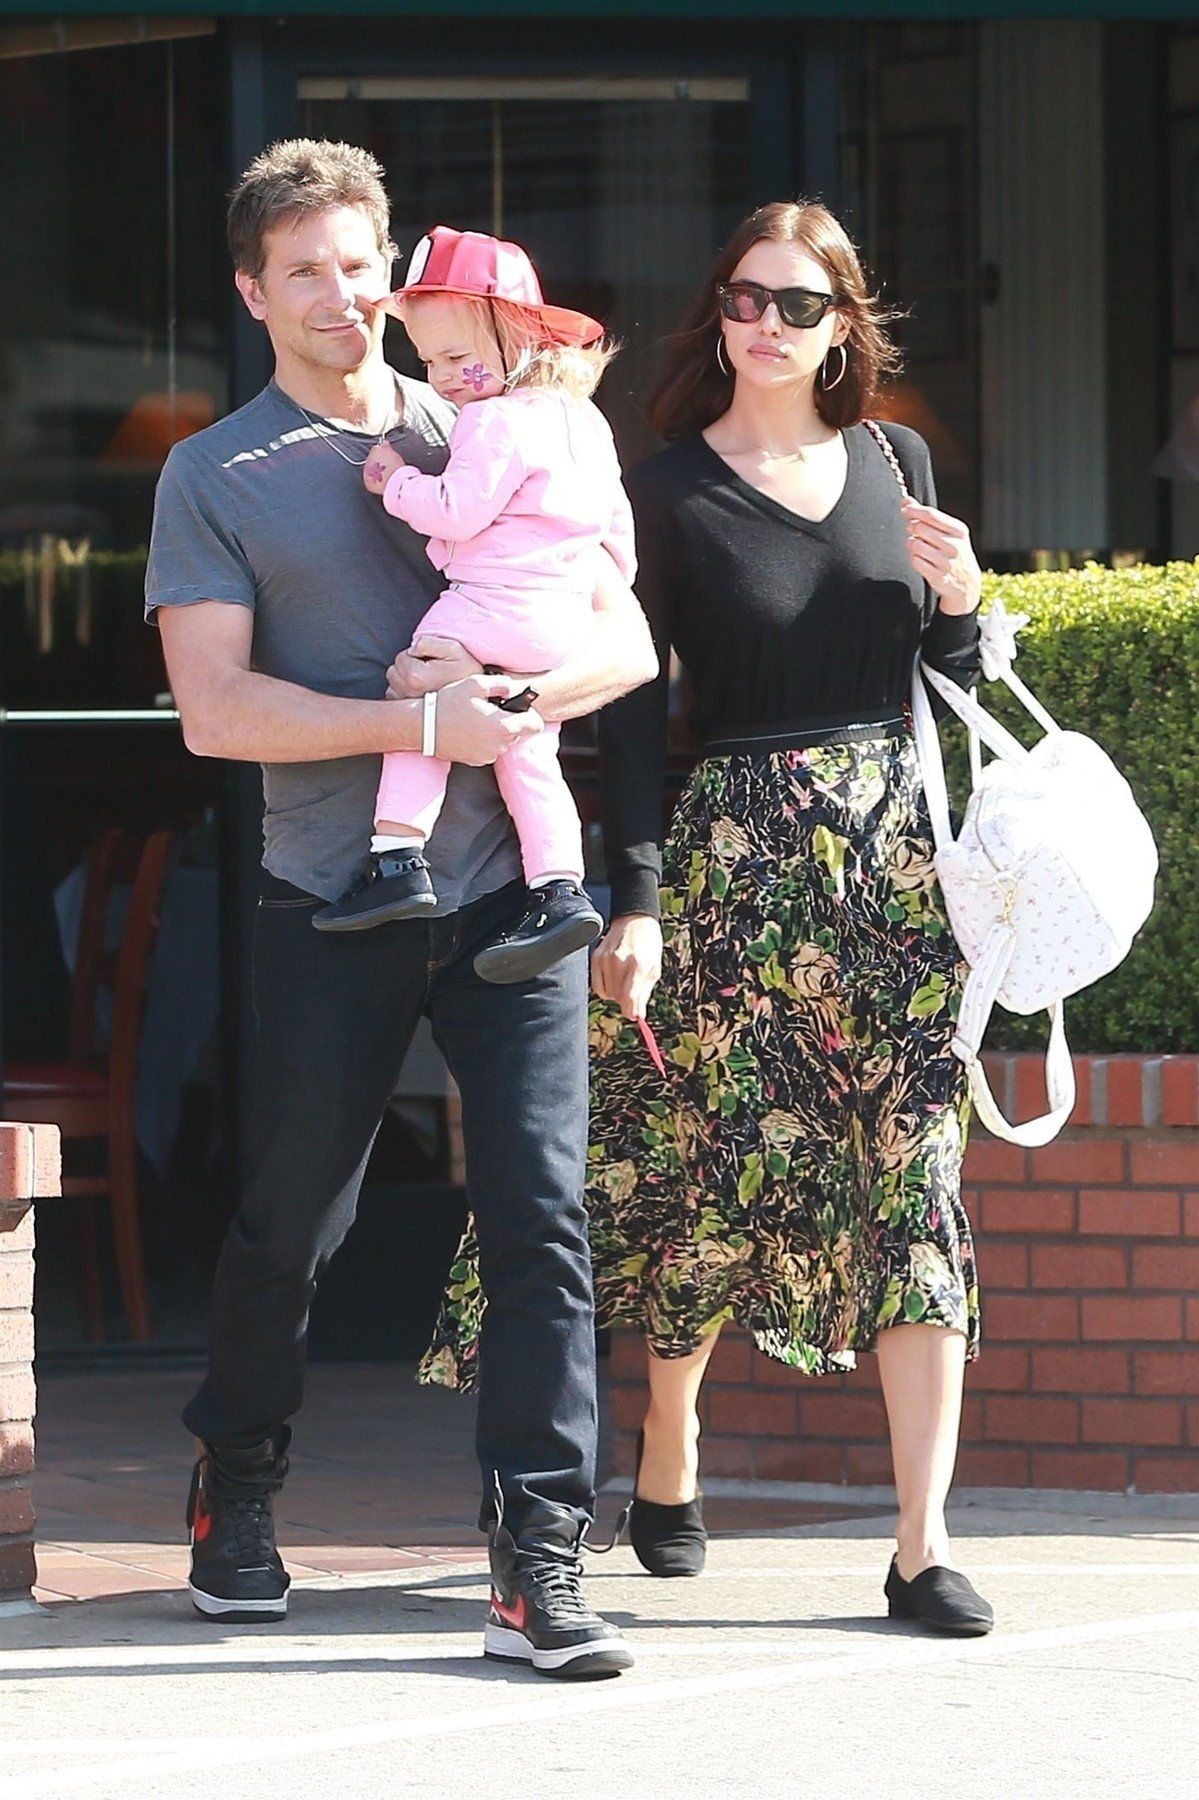 Santa Monica, CA  - Bradley Cooper and Irina Shayk leave a birthday party with their little firefighter Lea in Santa Monica. The Russian supermodel makes simple stylish in a black v-neck top with a floral print dress and matching black flats, for her outing with loved ones ahead of Thanksgiving.  Pictured: Bradley Cooper, Irina Shayk, Lea De Seine Shayk Cooper    *UK Clients - Pictures Containing Children Please Pixelate Face Prior To Publication*, Image: 397591344, License: Rights-managed, Restrictions: , Model Release: no, Credit line: Profimedia, Backgrid USA